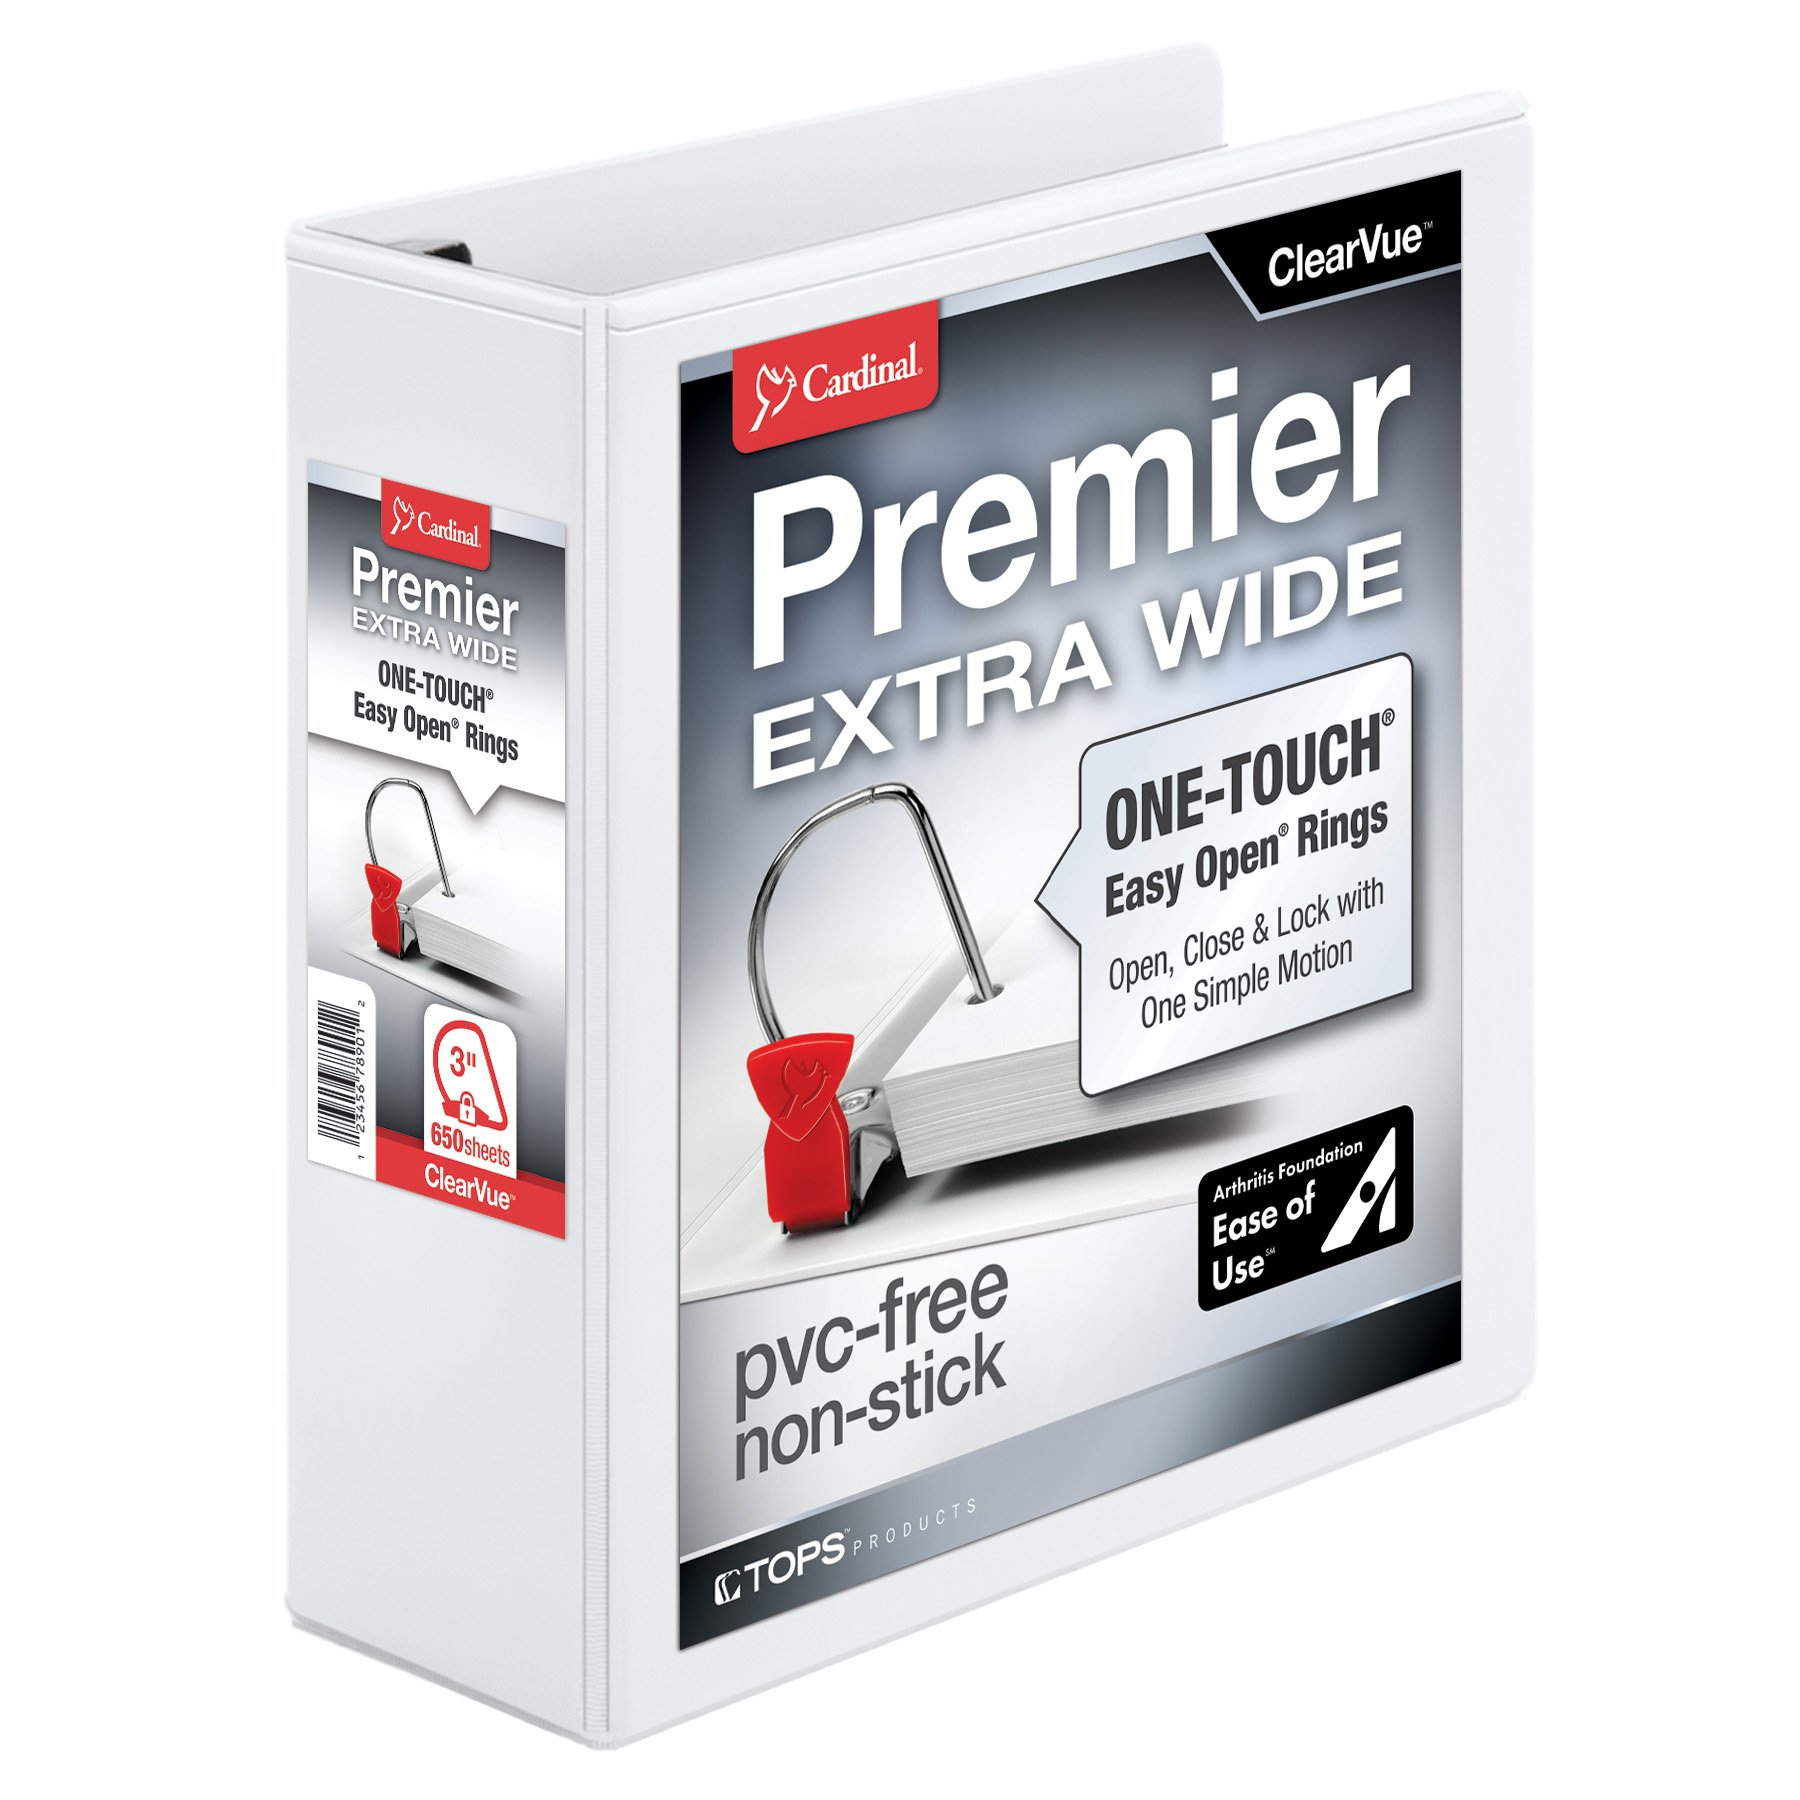 Cardinal Premier Easy Open Extra-Wide 3-Ring Binder, 3'', ONE-TOUCH Easy Open Locking Slant-D Rings, 650-Sheet Capacity, ClearVue Cover, White (13330)